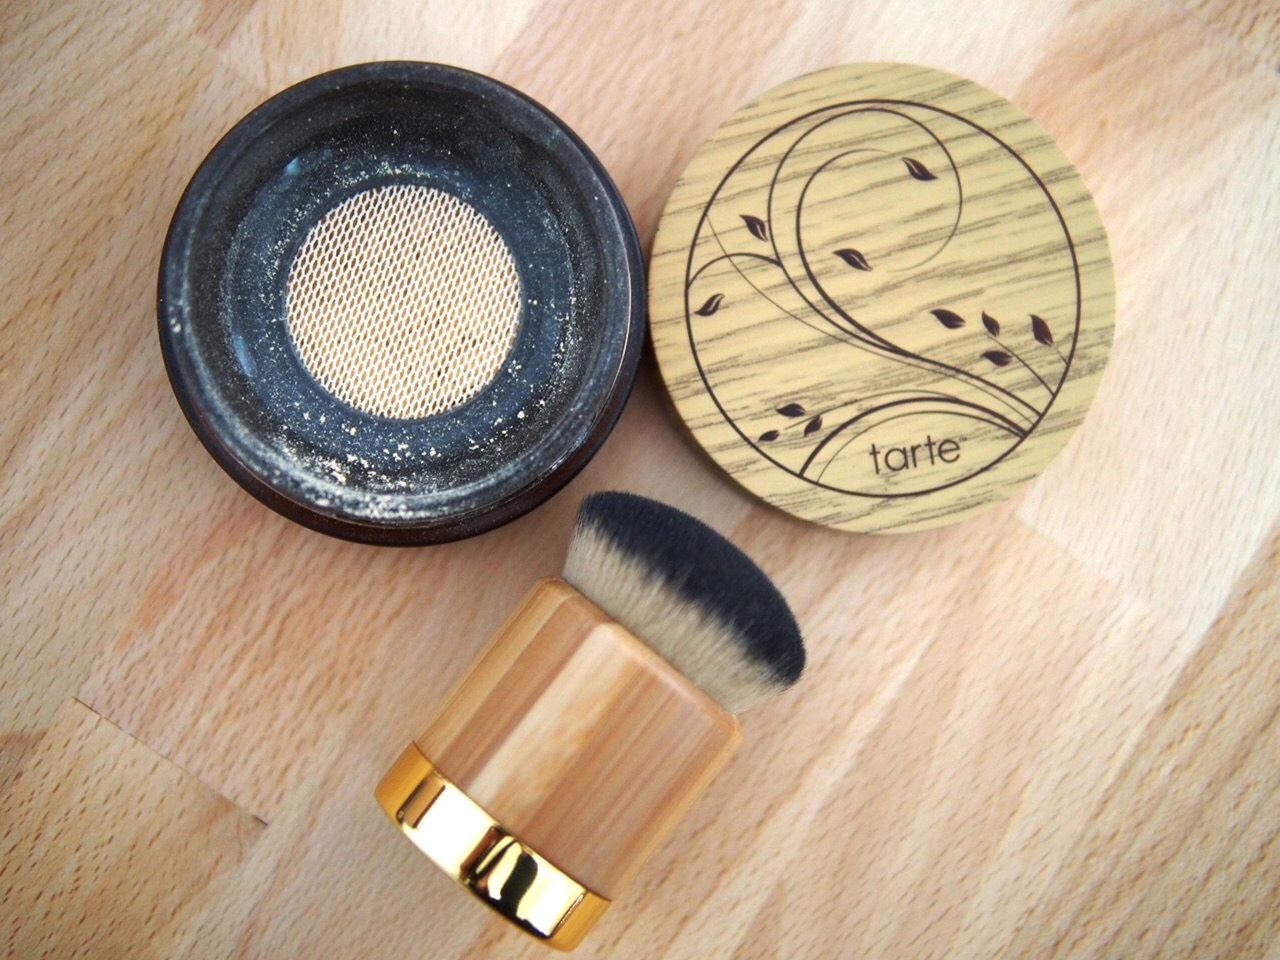 Tarte Amazonian Clay Foundation  This is one of the most full coverage foundations I have ever tried. However, despite the fact that it covers everything, it's very lightweight on the skin.